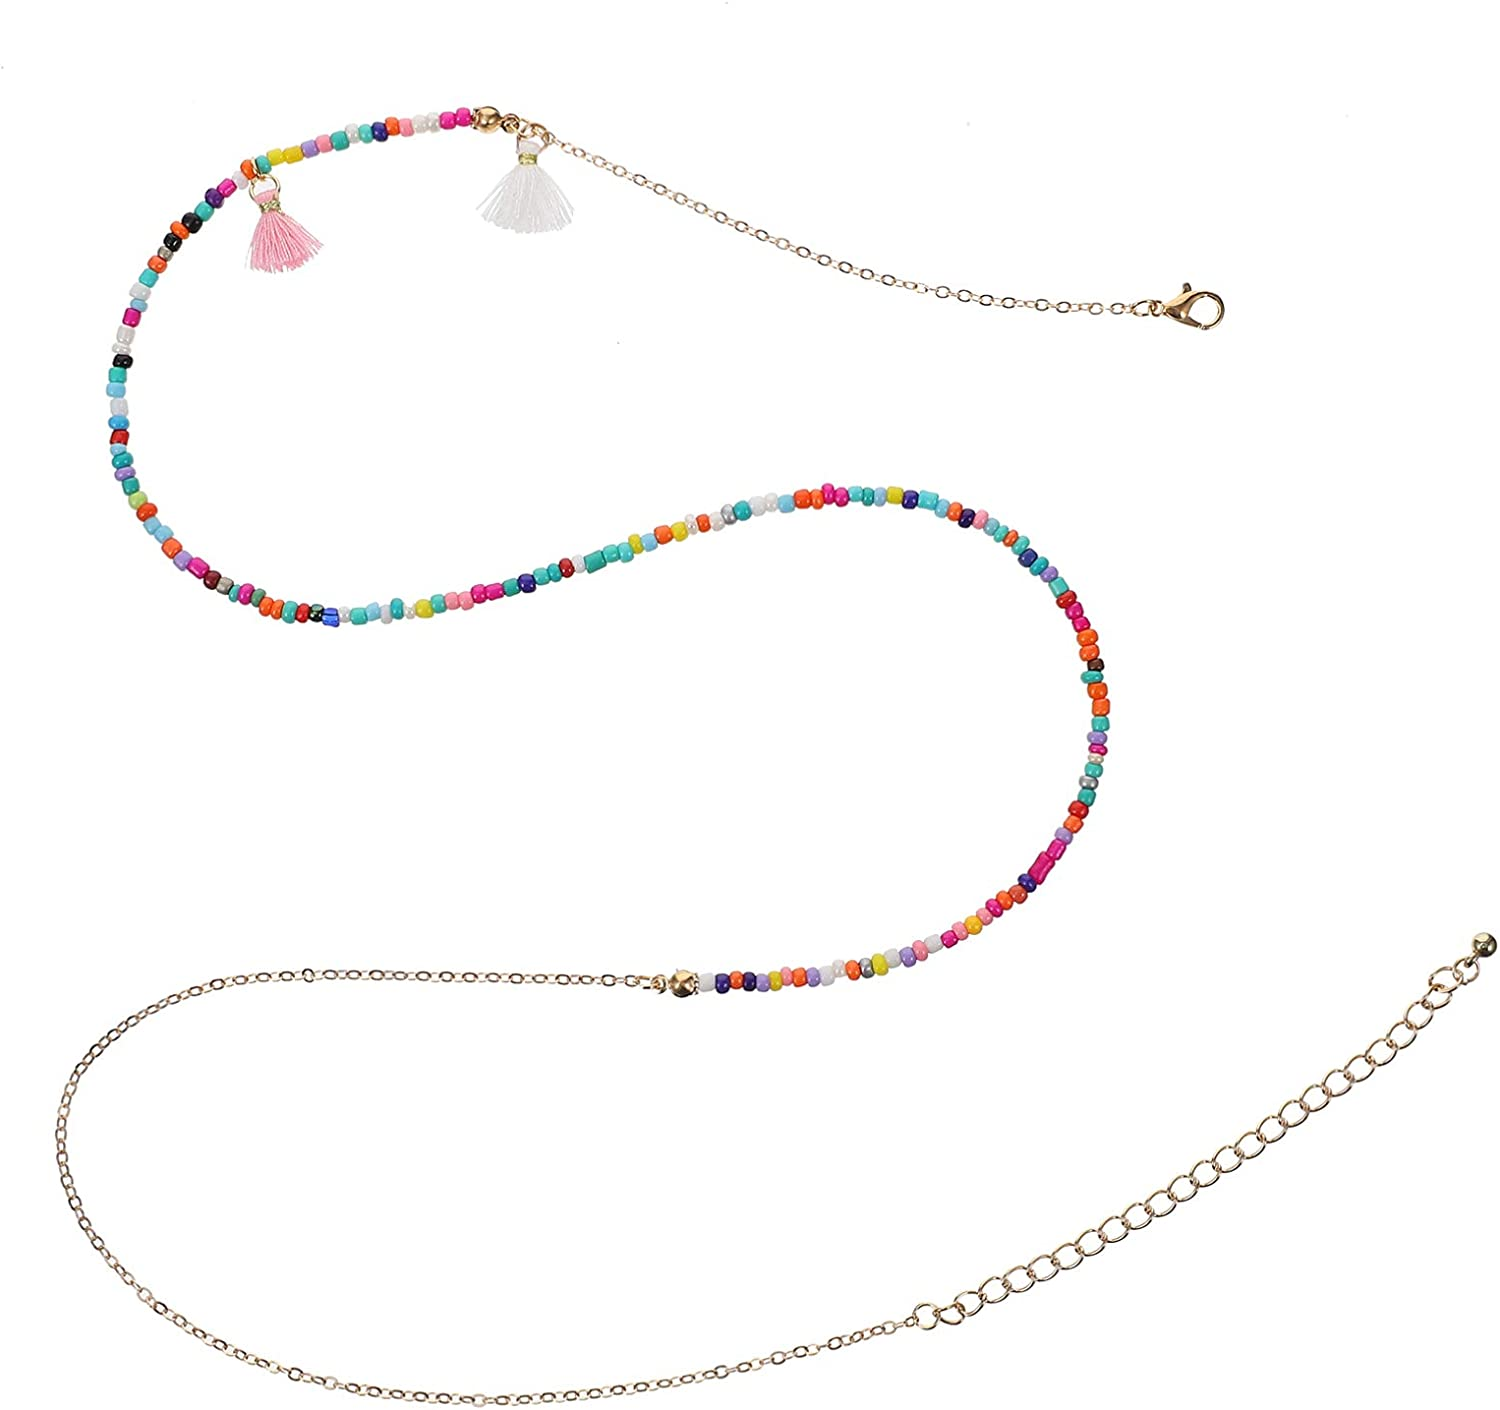 VALICLUD 2Pcs Woman Waist Chain Colorful Beads Waist Chains Bohemian Style Body Chains Belly Chains